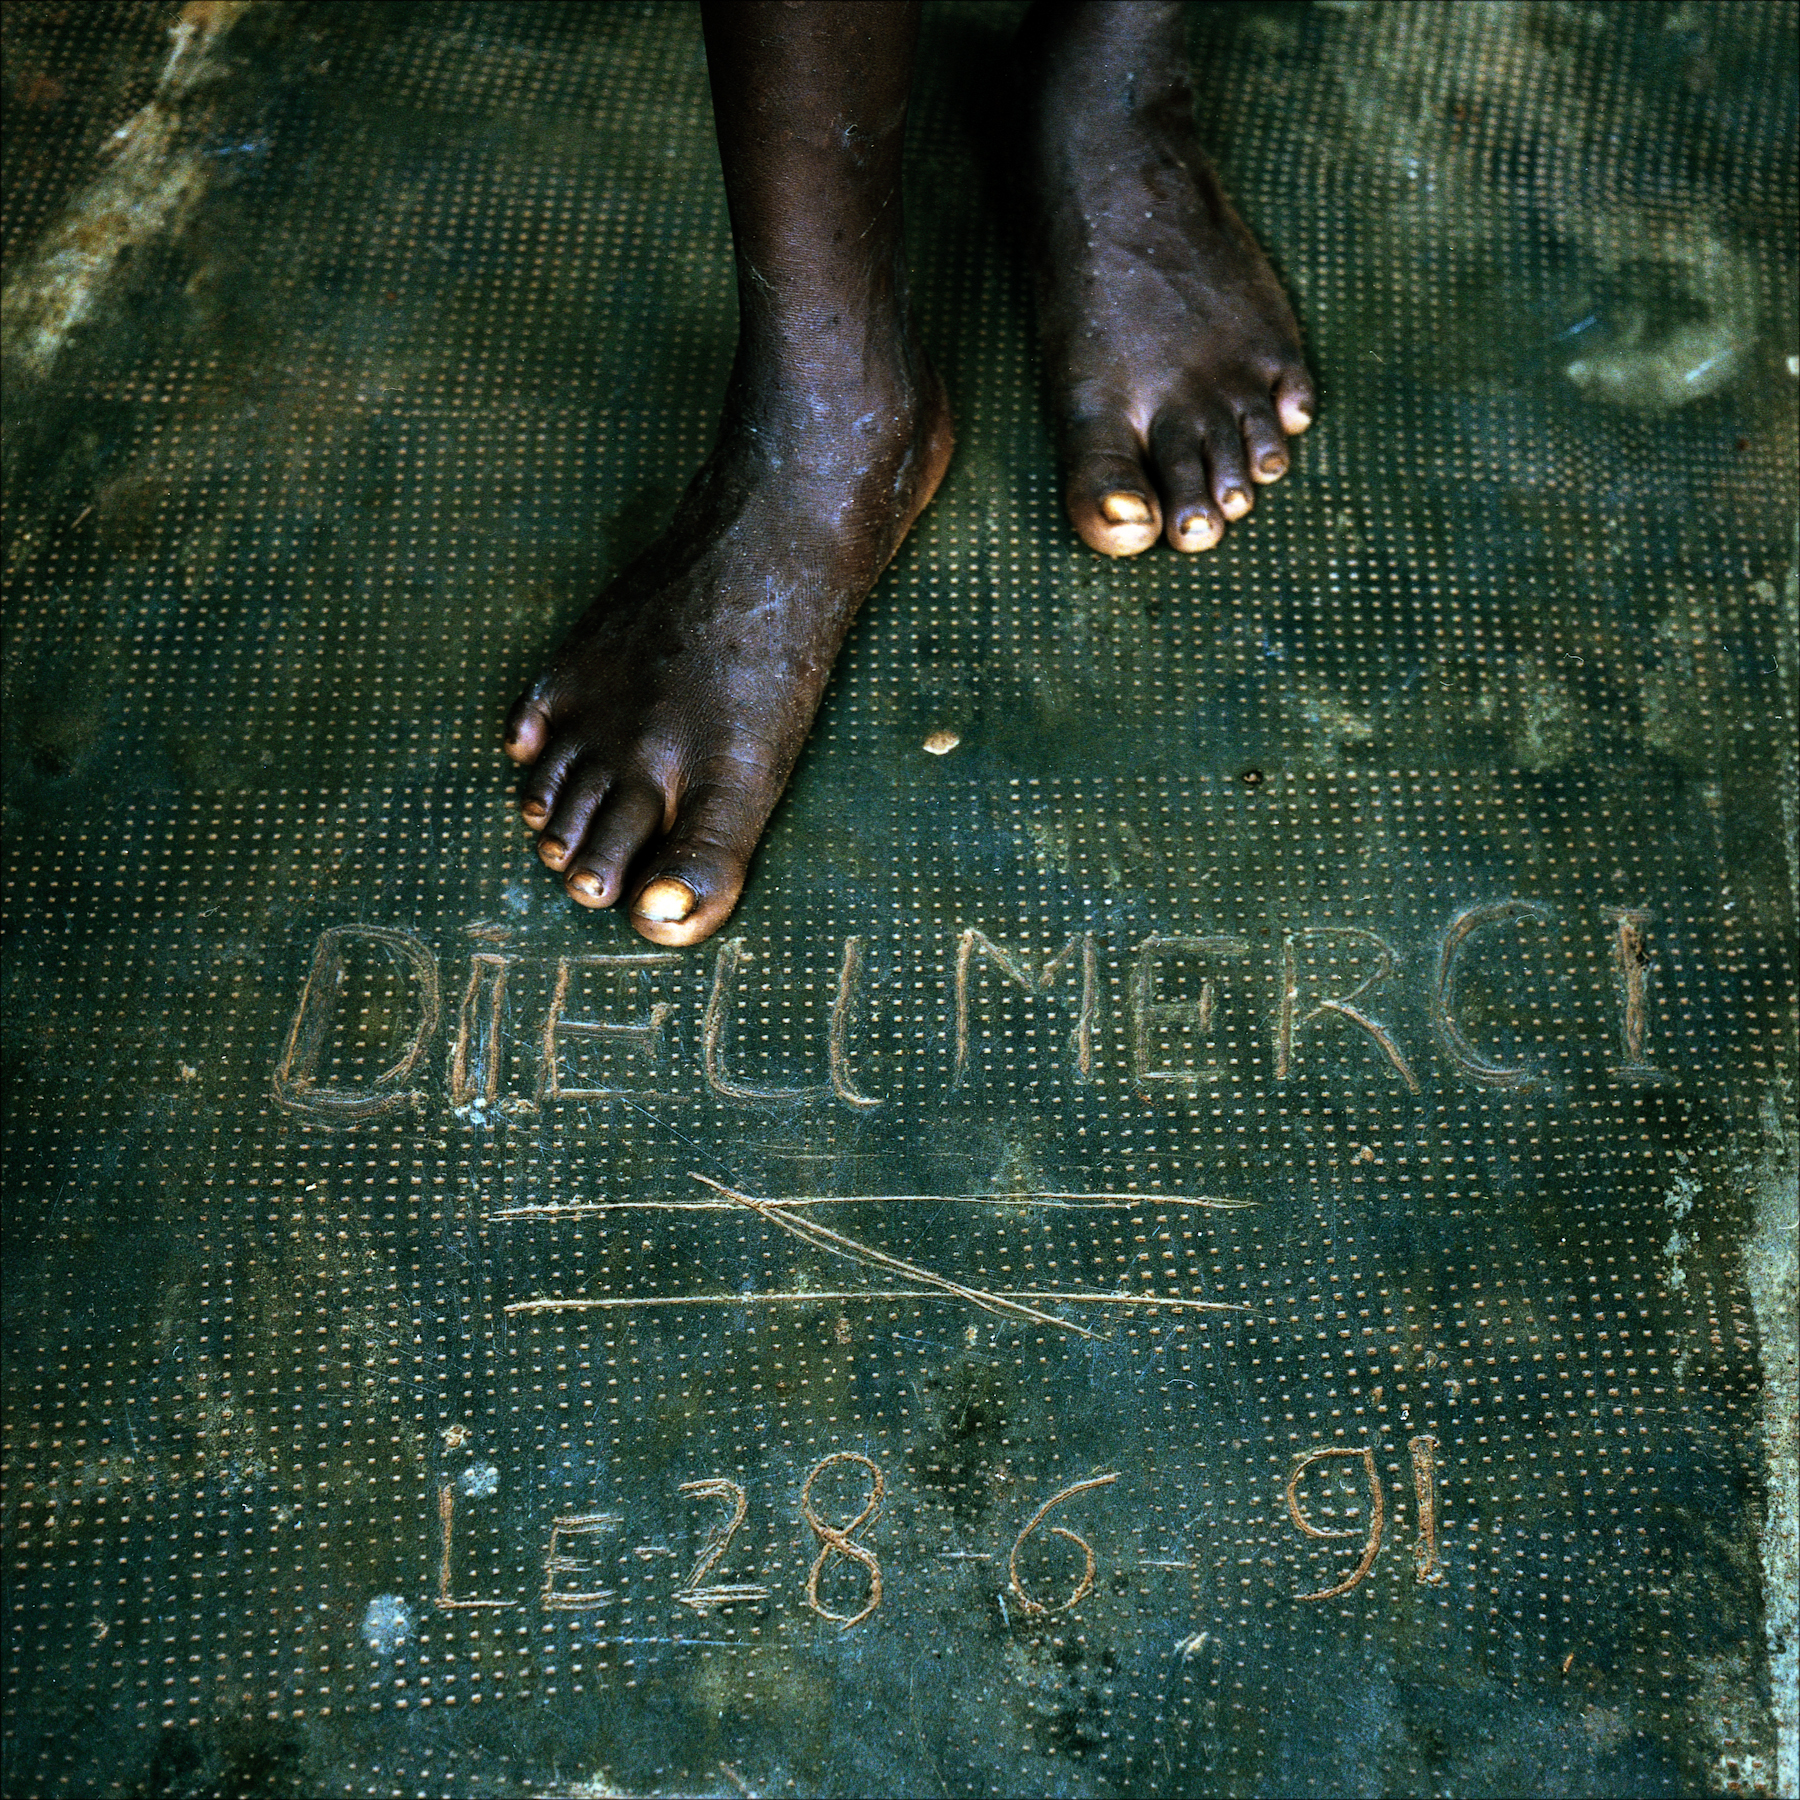 """Dieu Merci"" inscribed in the concrete threshold of a home, Ketou."